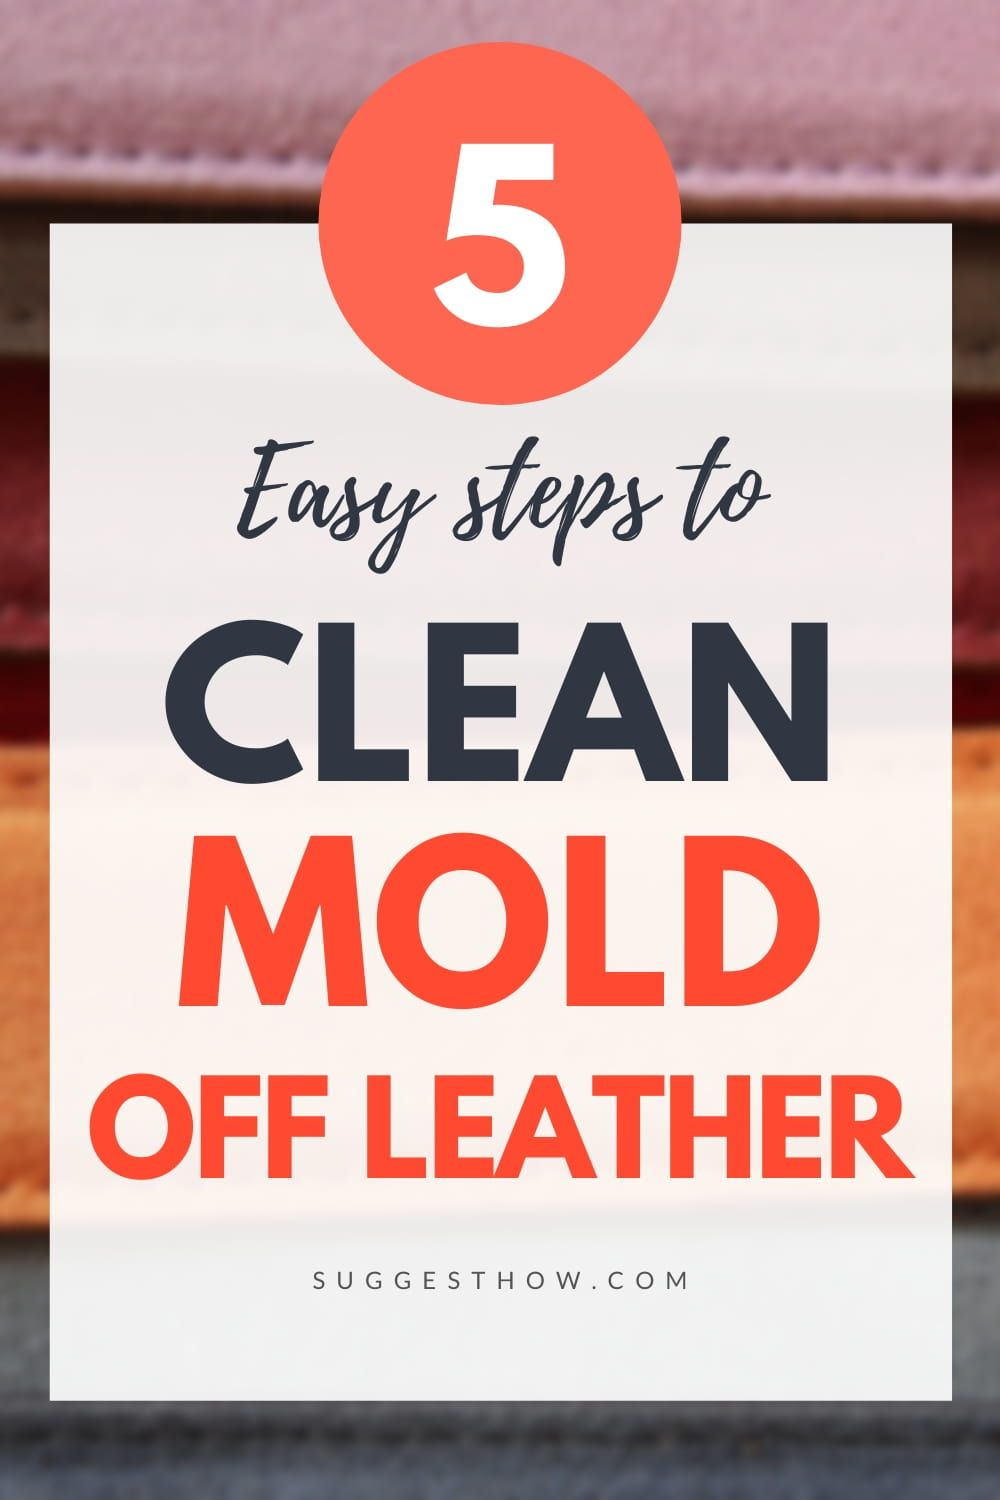 How to clean mold off leather 5 steps to follow in 2020